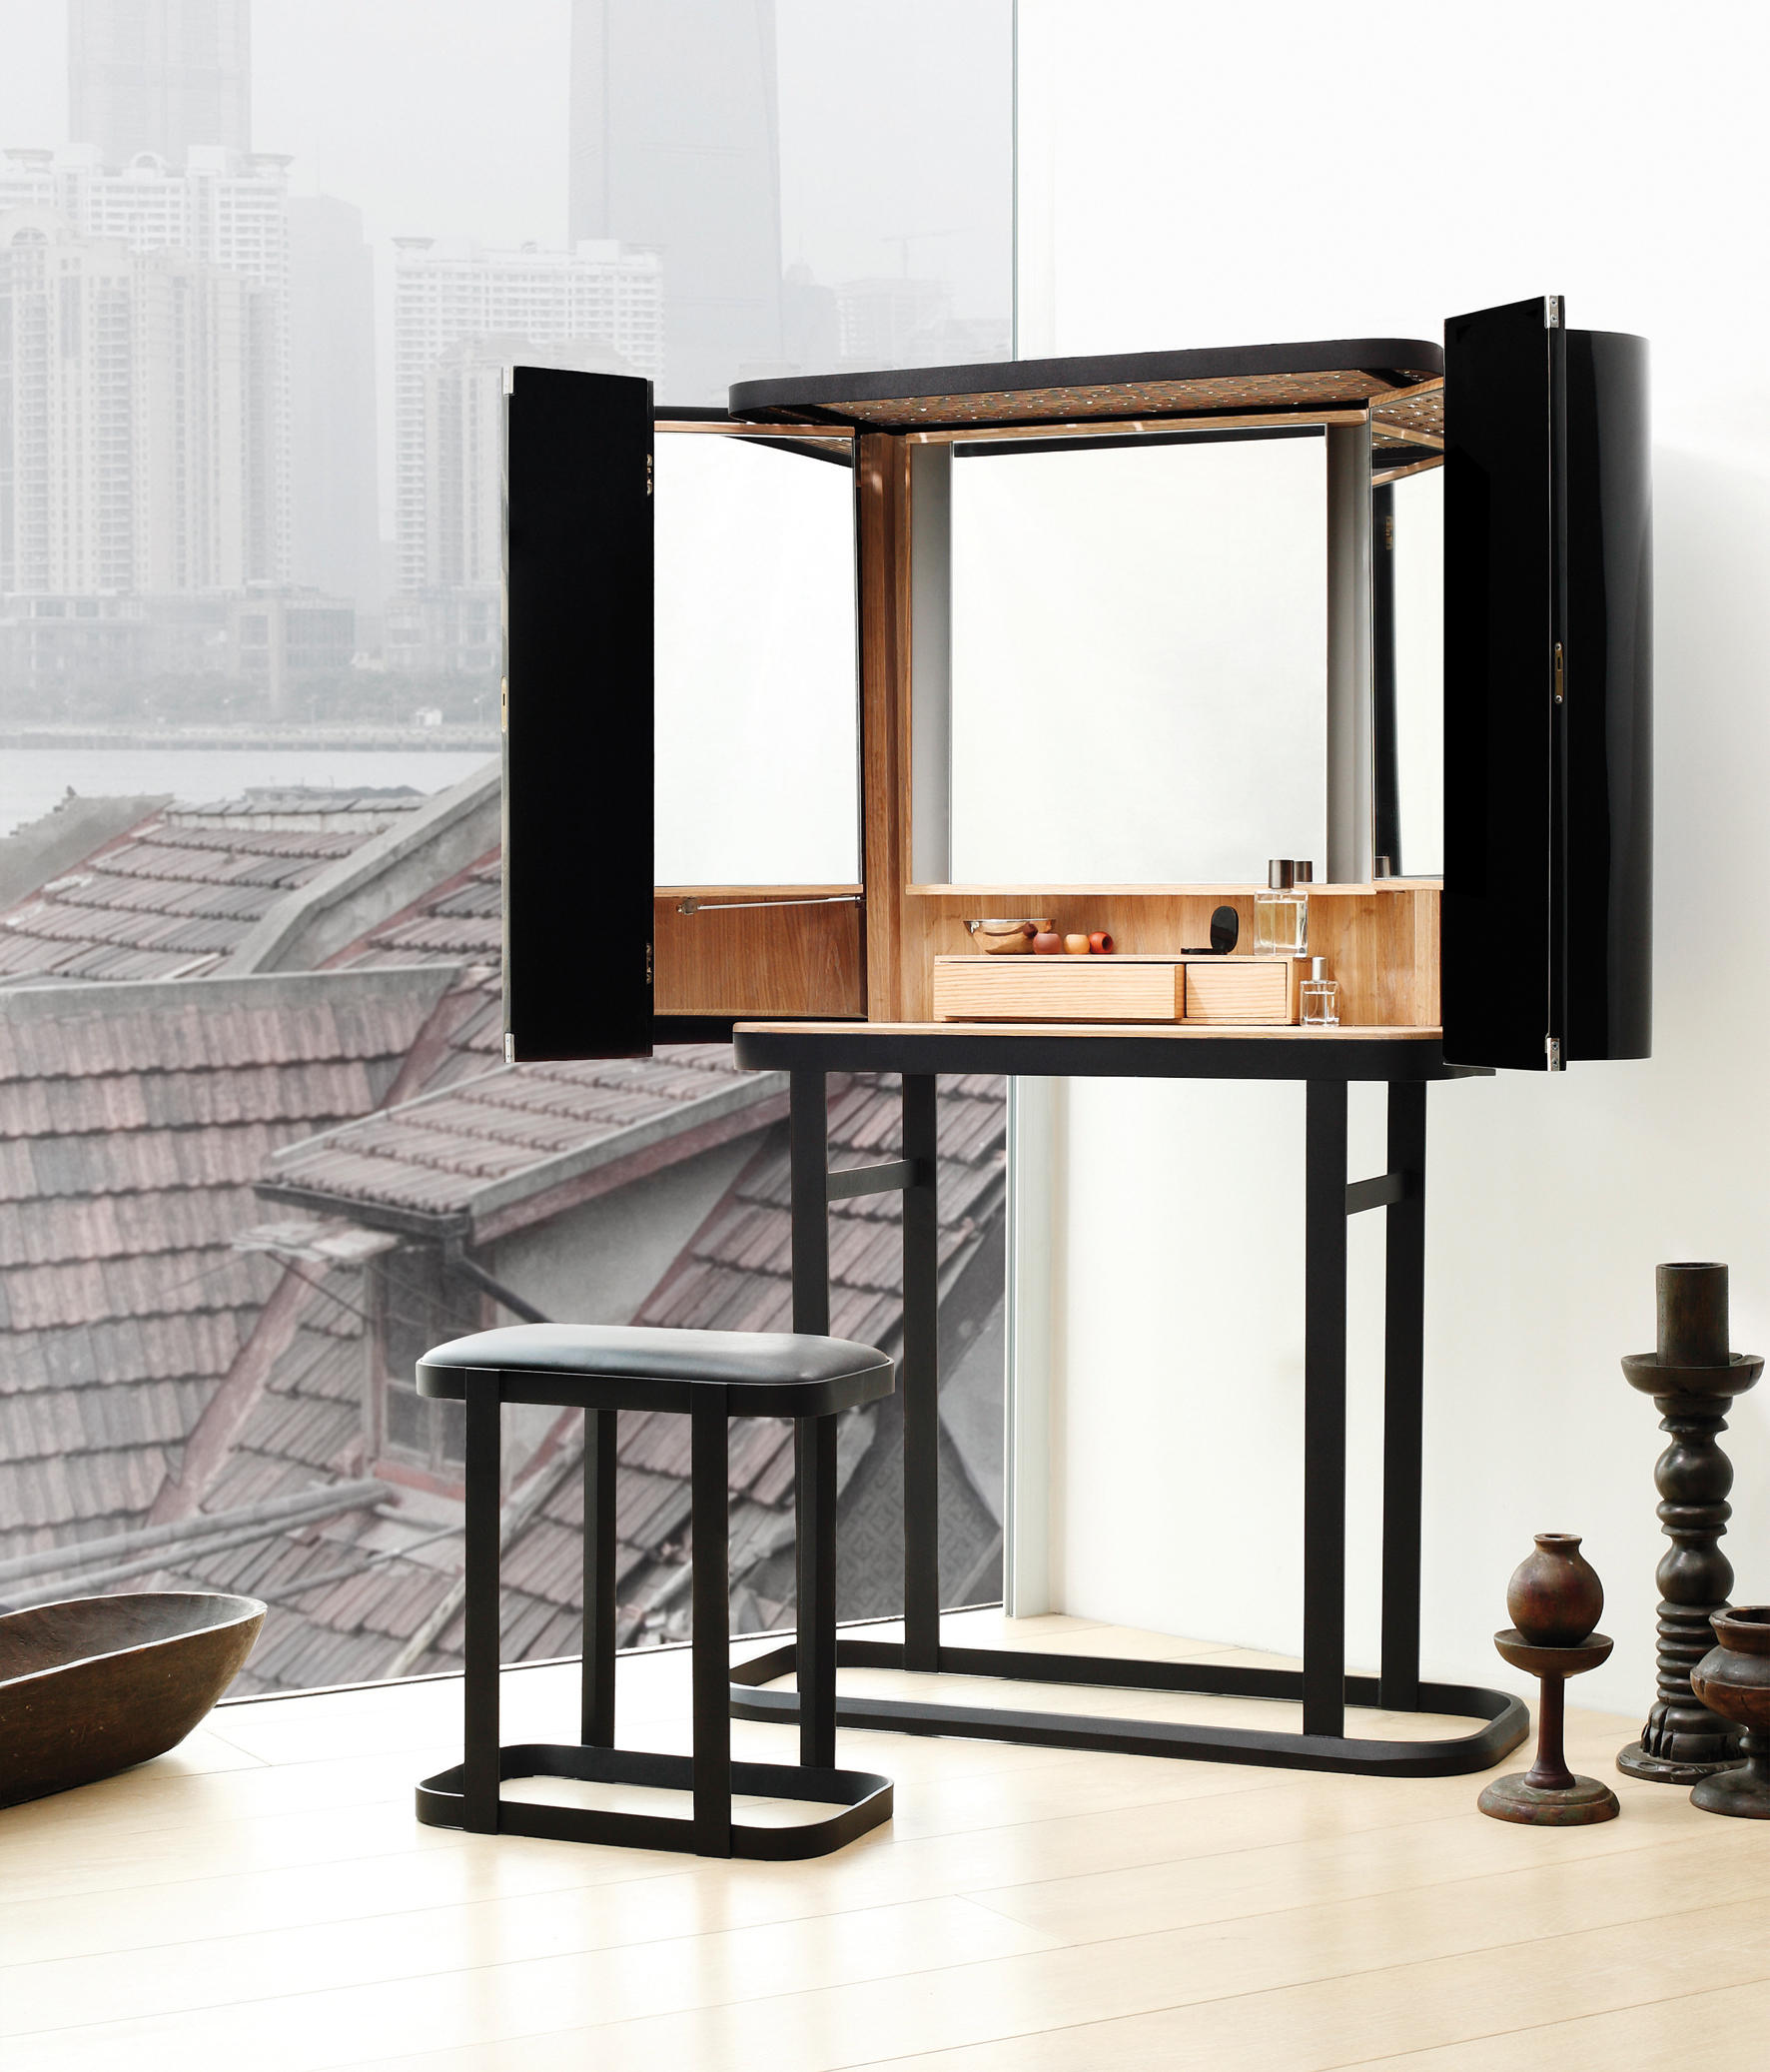 The Narcissist Dressing Table by BD Barcelona. THE NARCISSIST DRESSING TABLE   Dressing tables from BD Barcelona